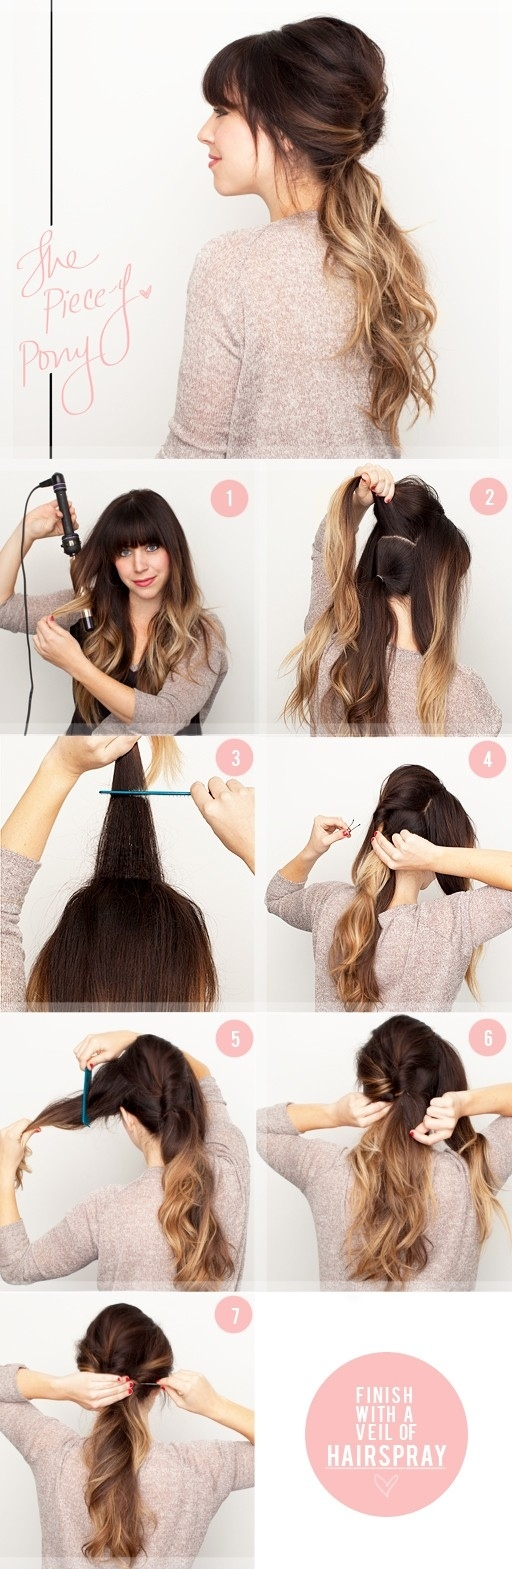 Ombre Ponytail Hairstyle Tutorial for Summer